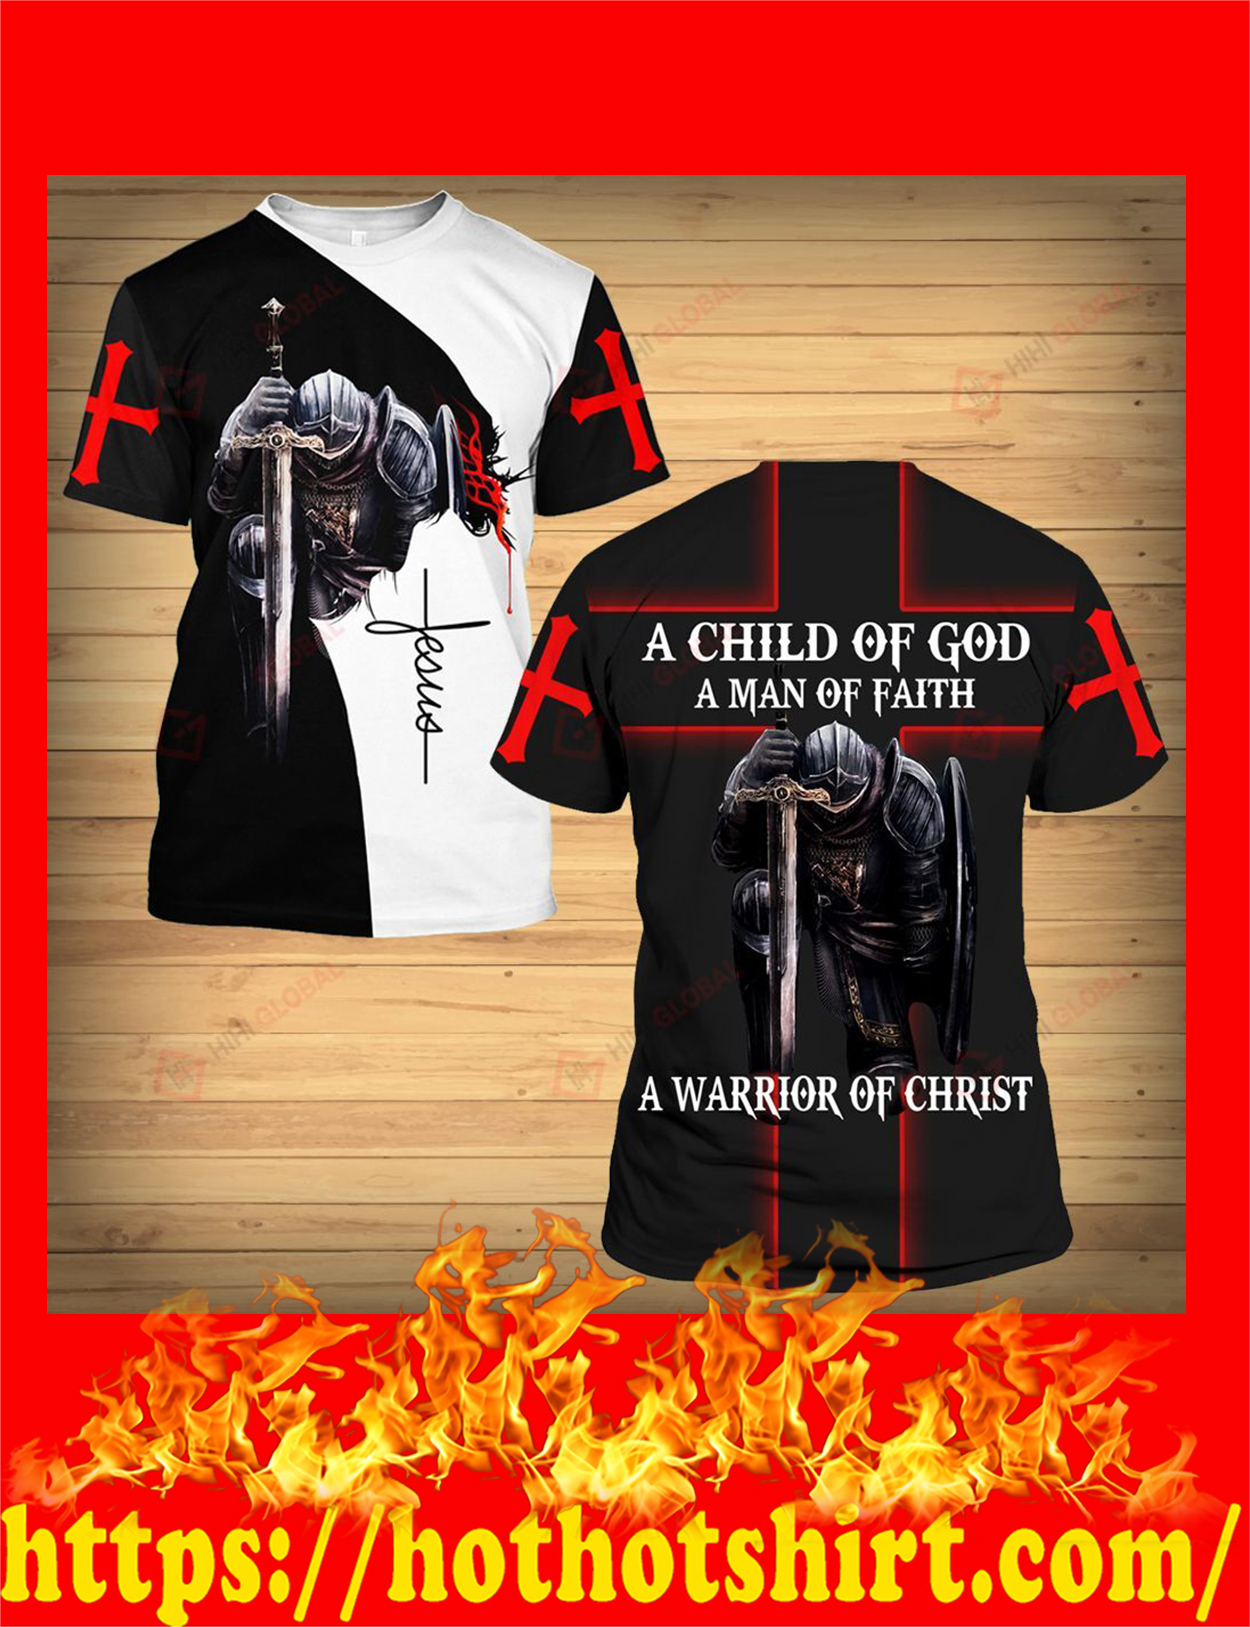 A child of god a man of faith a warrior of chrisy 3d t-shirt